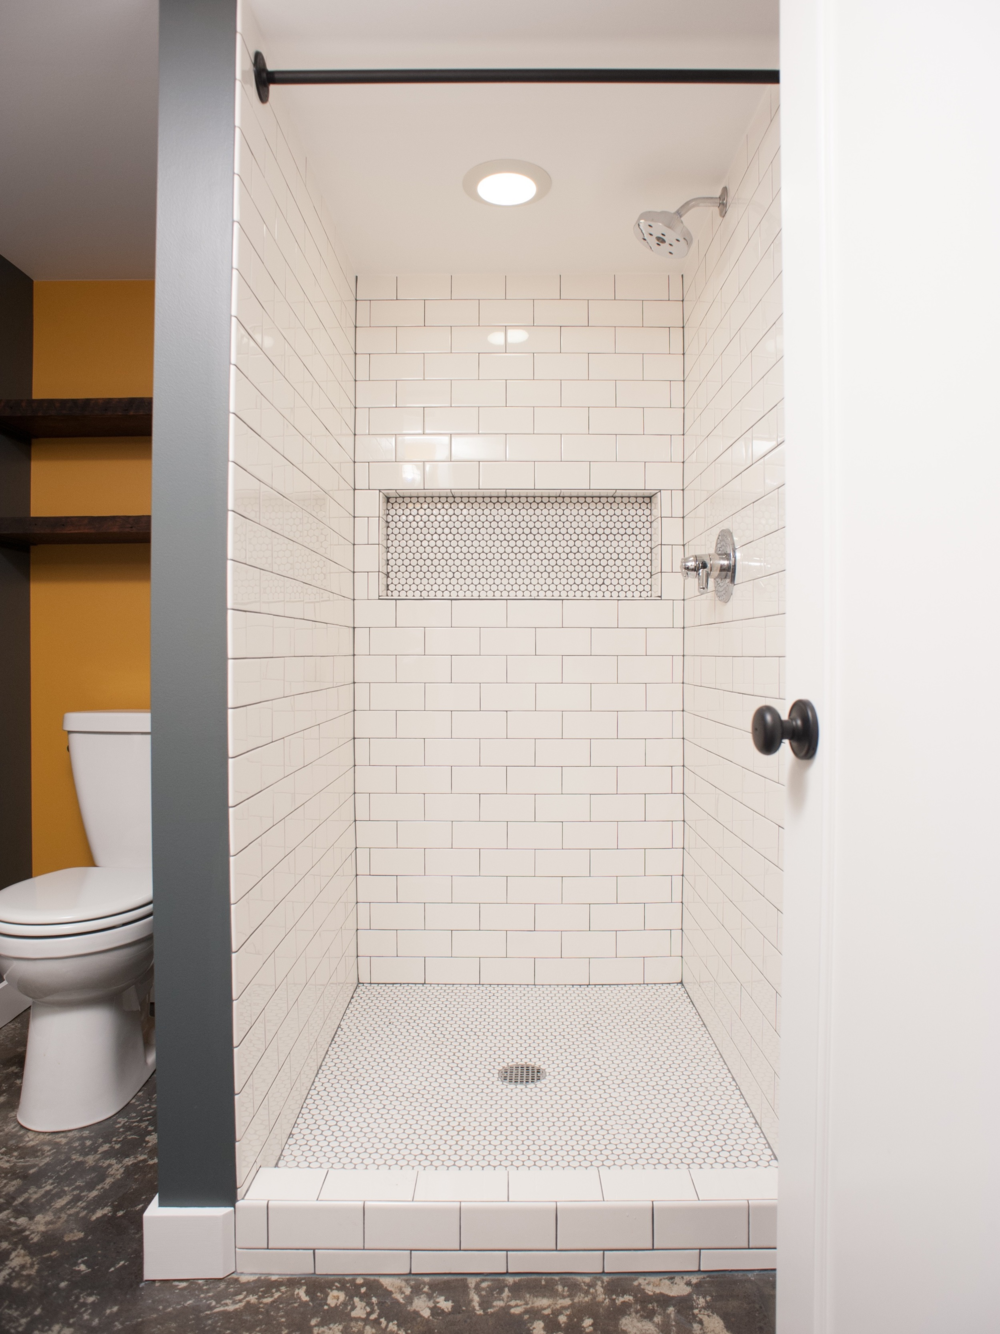 AFTER: Improved layout with tiled shower, modern fixtures, and custom steel-pipe towel bars.